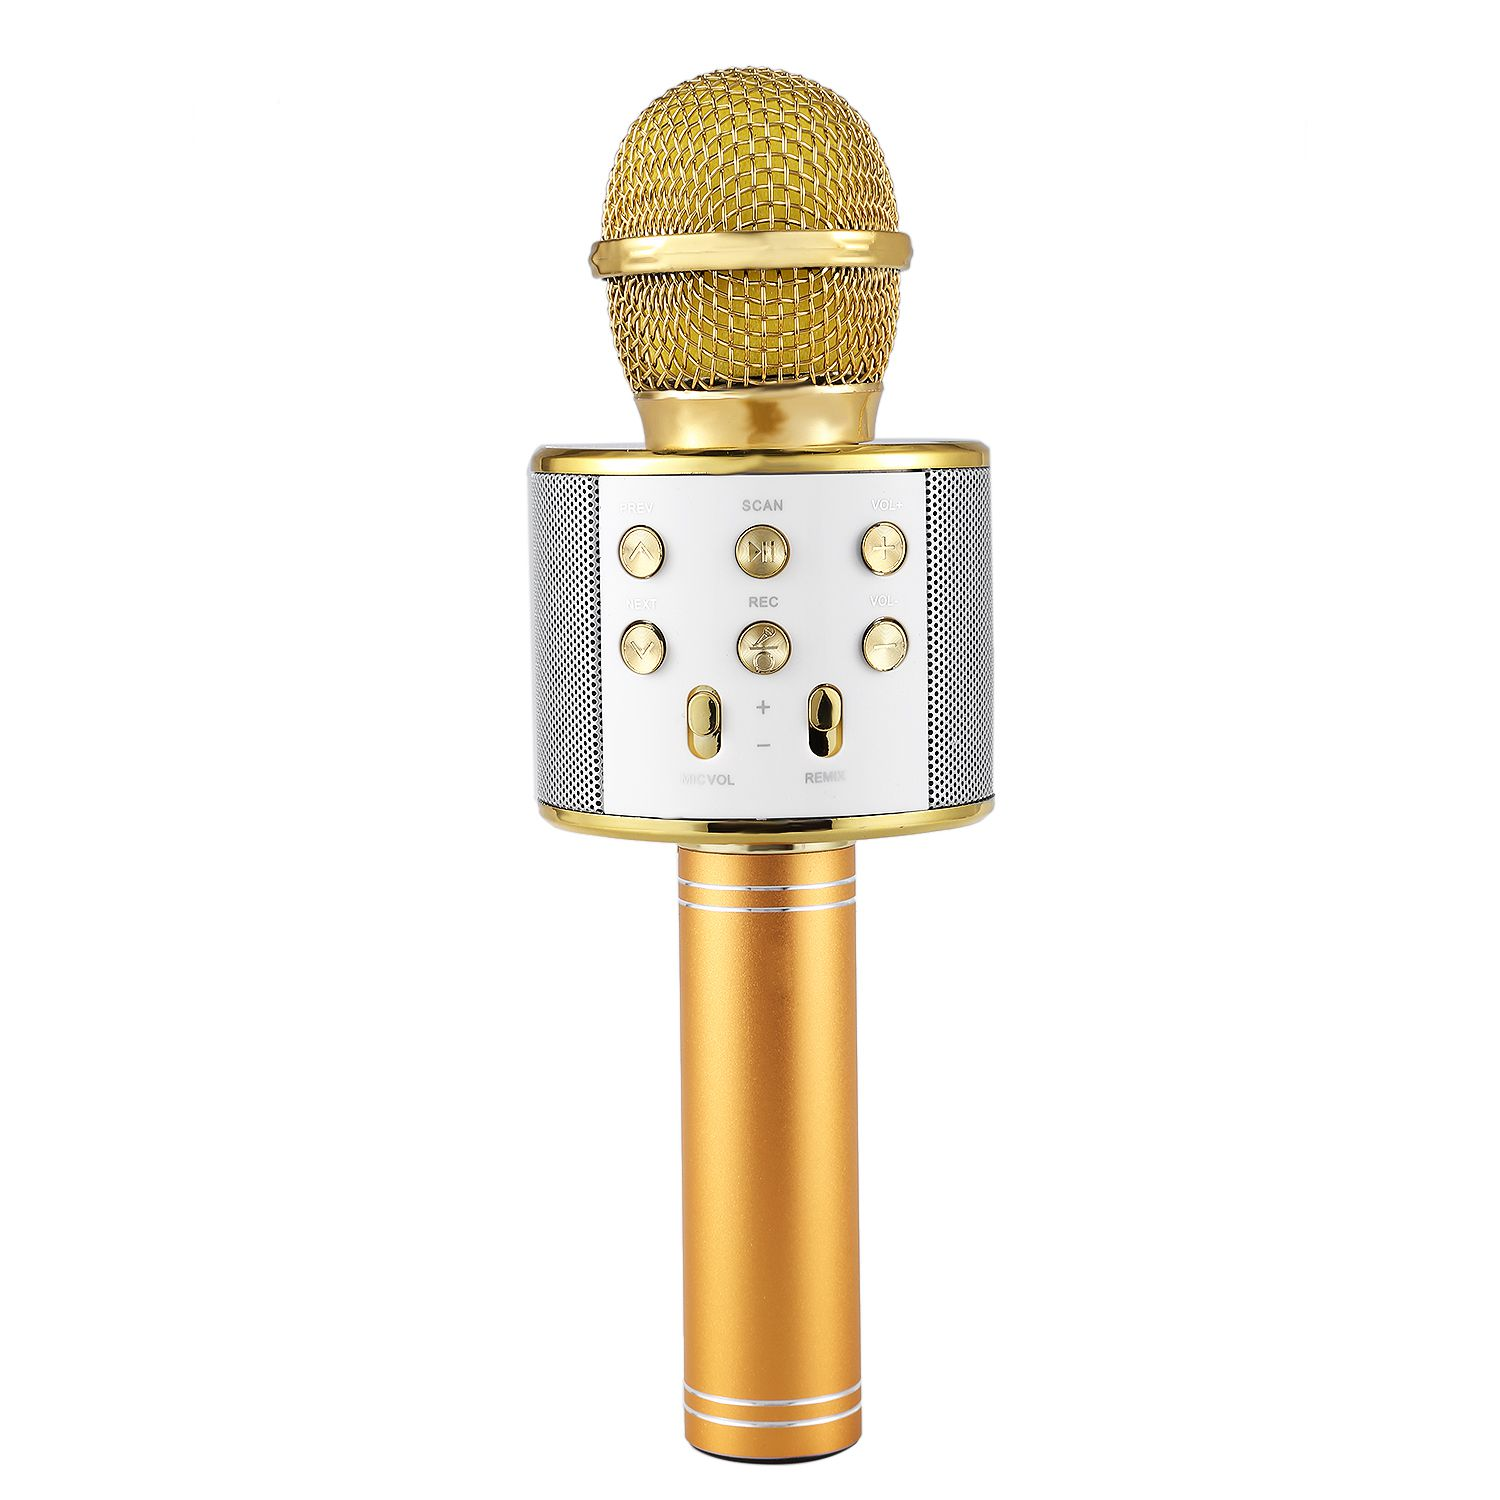 buy professional bluetooth wireless microphone karaoke microphone speaker. Black Bedroom Furniture Sets. Home Design Ideas